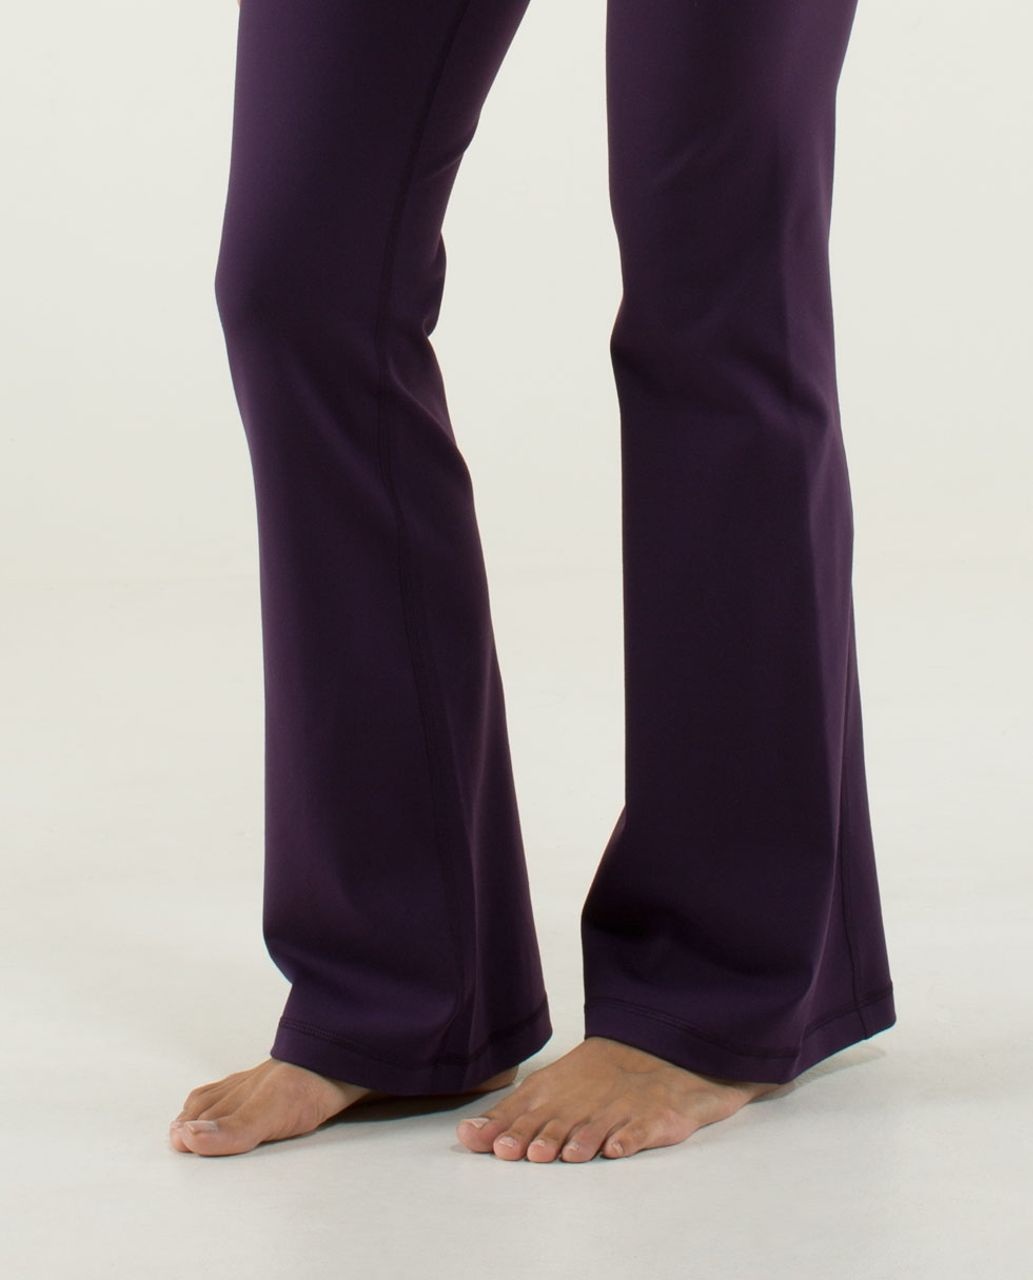 Lululemon Groove Pant (Regular) *Full-On Luon - Deep Zinfandel / Micro Macro Stripe Deep Zinfandel / Beautiful Baroque Black